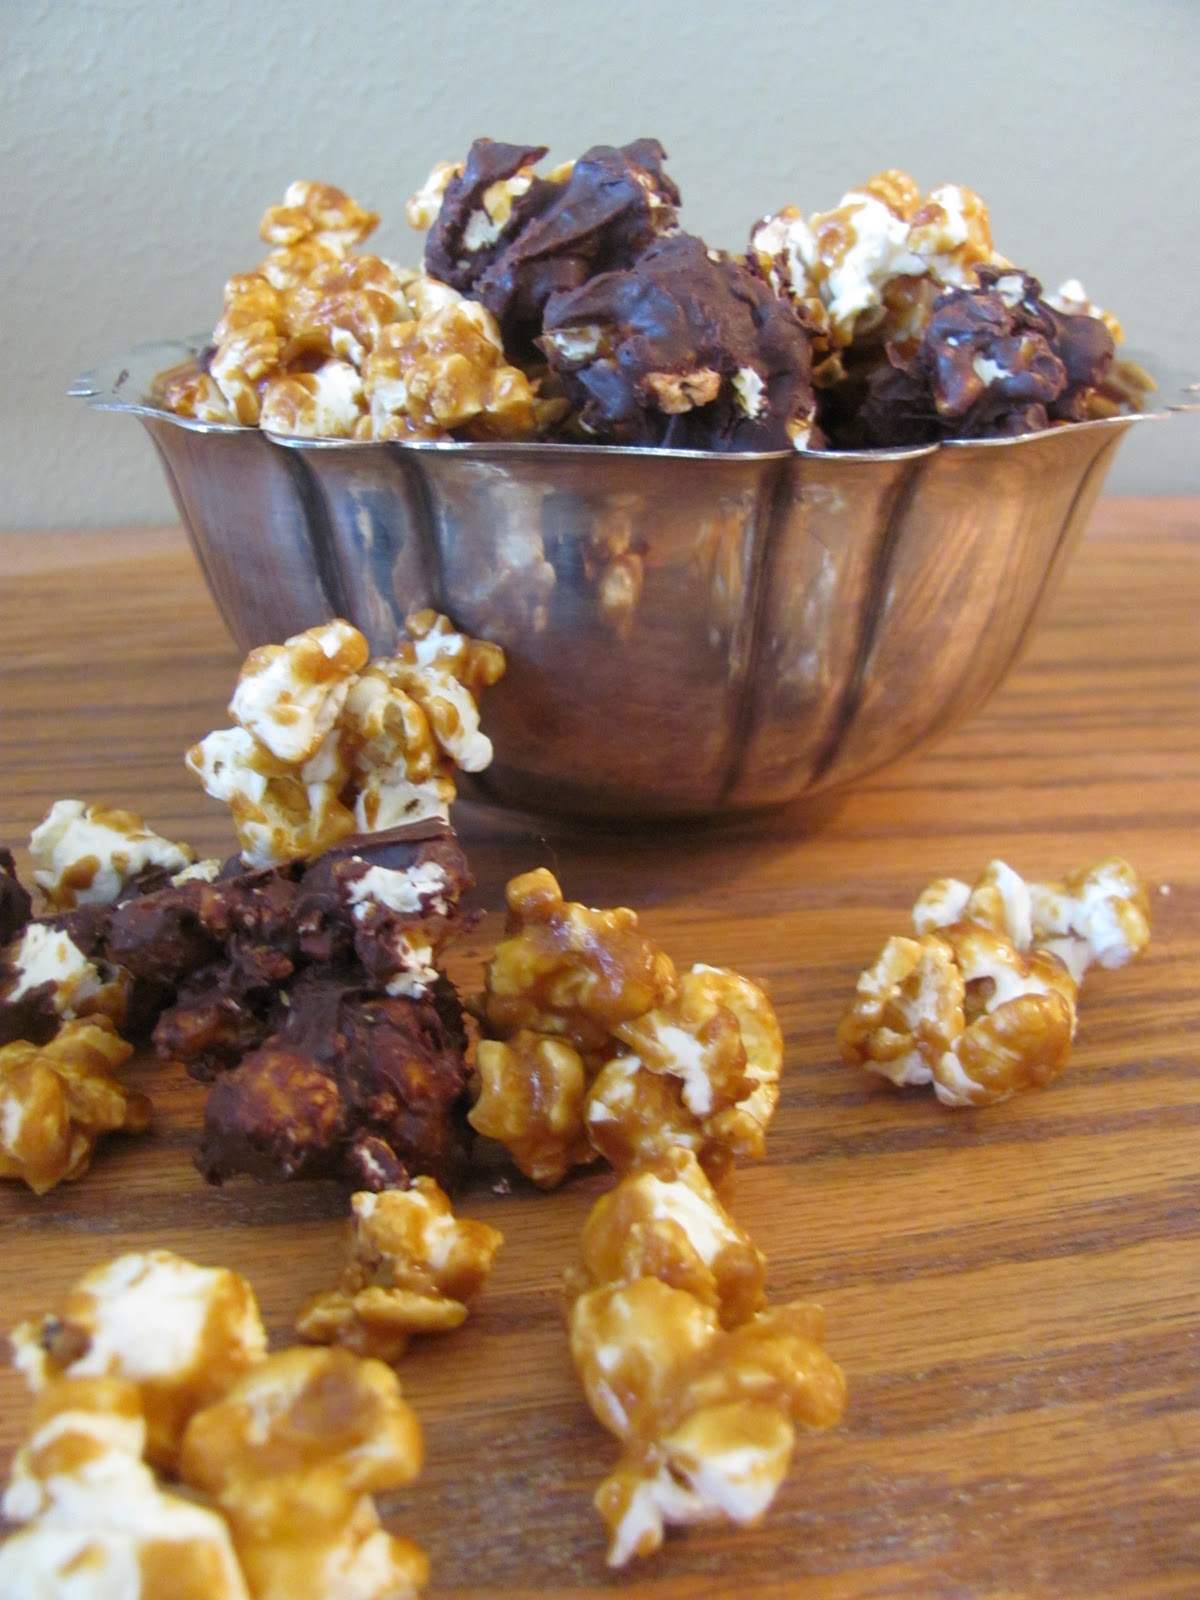 Growing Gourmets: Chocolate Almond Caramel Corn